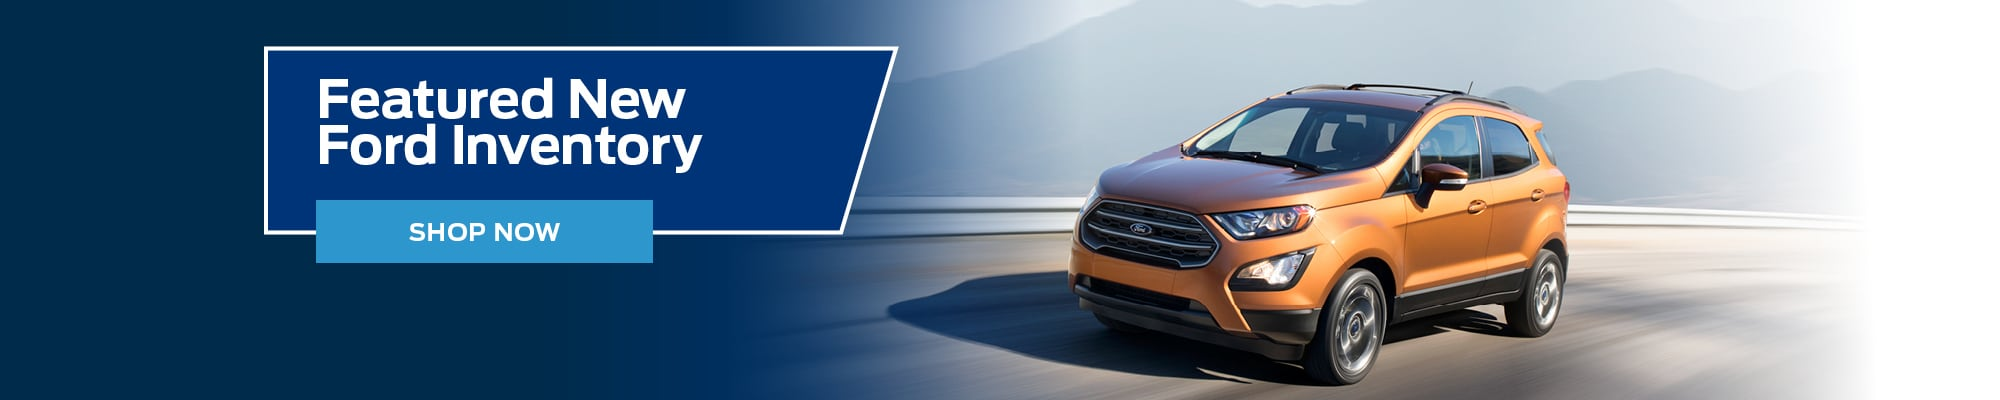 New 2018 Ford Vehicle Specials | Dallas Ford Dealer